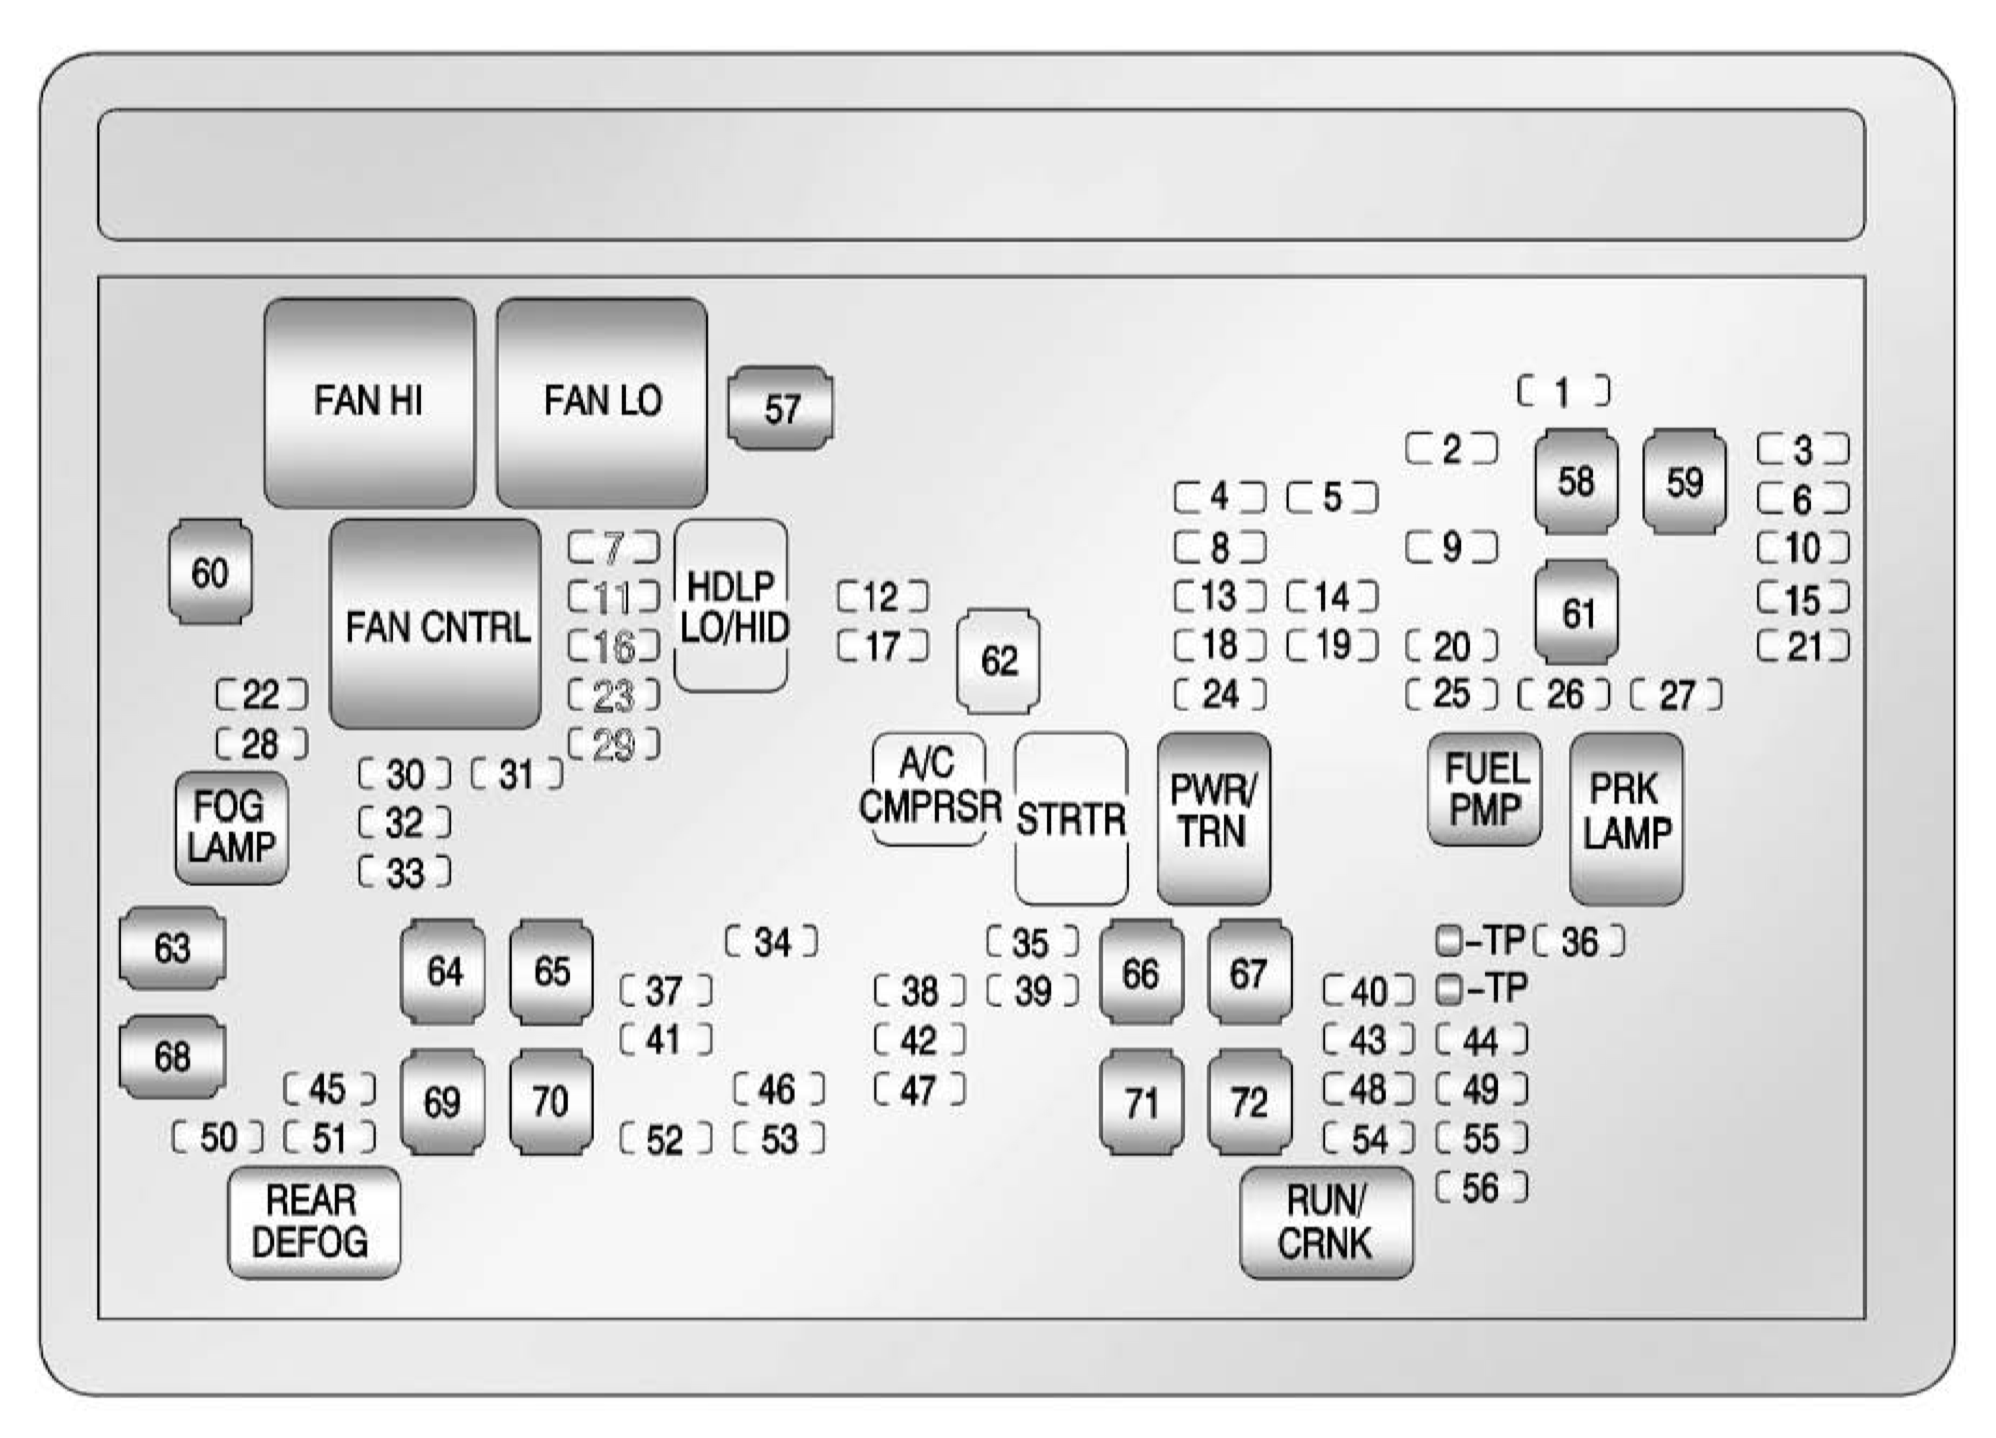 Chevrolet Tahoe 2012 2014 Fuse Box Diagram Auto Genius Engine Fan